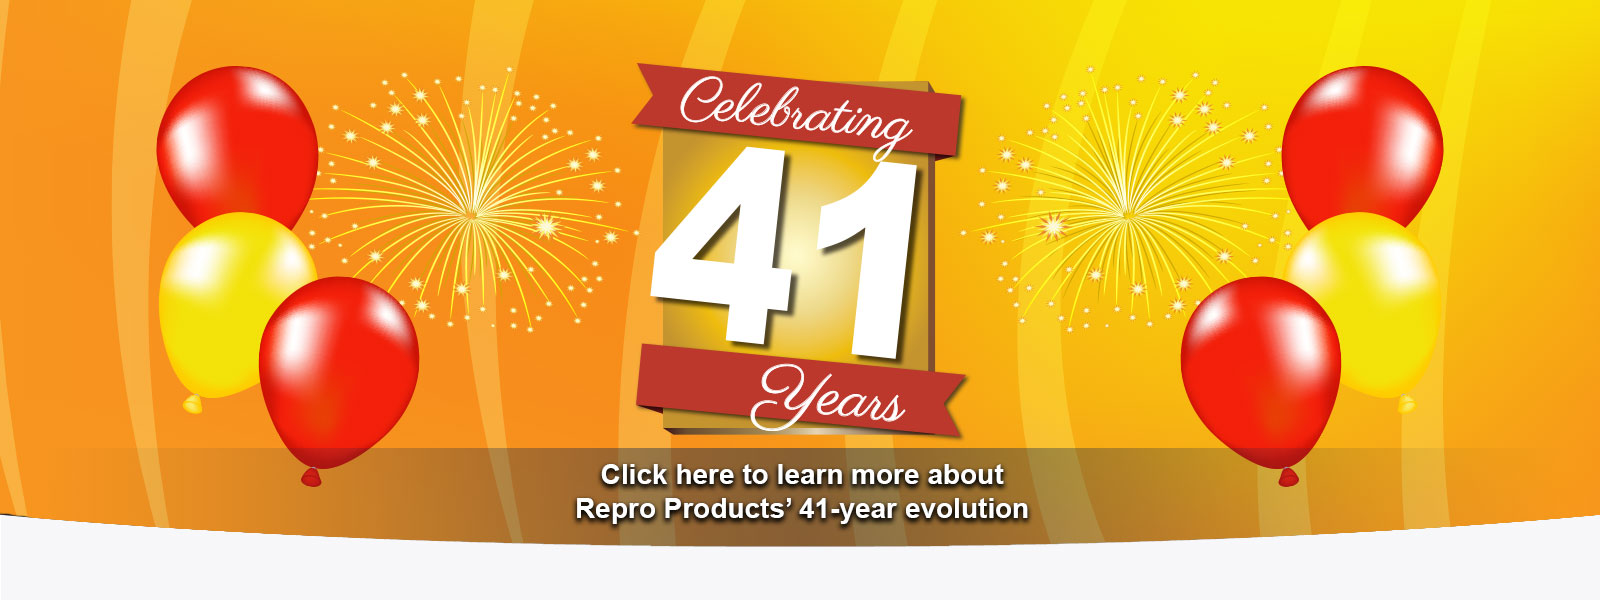 Repro Products Celebrates 41 Years